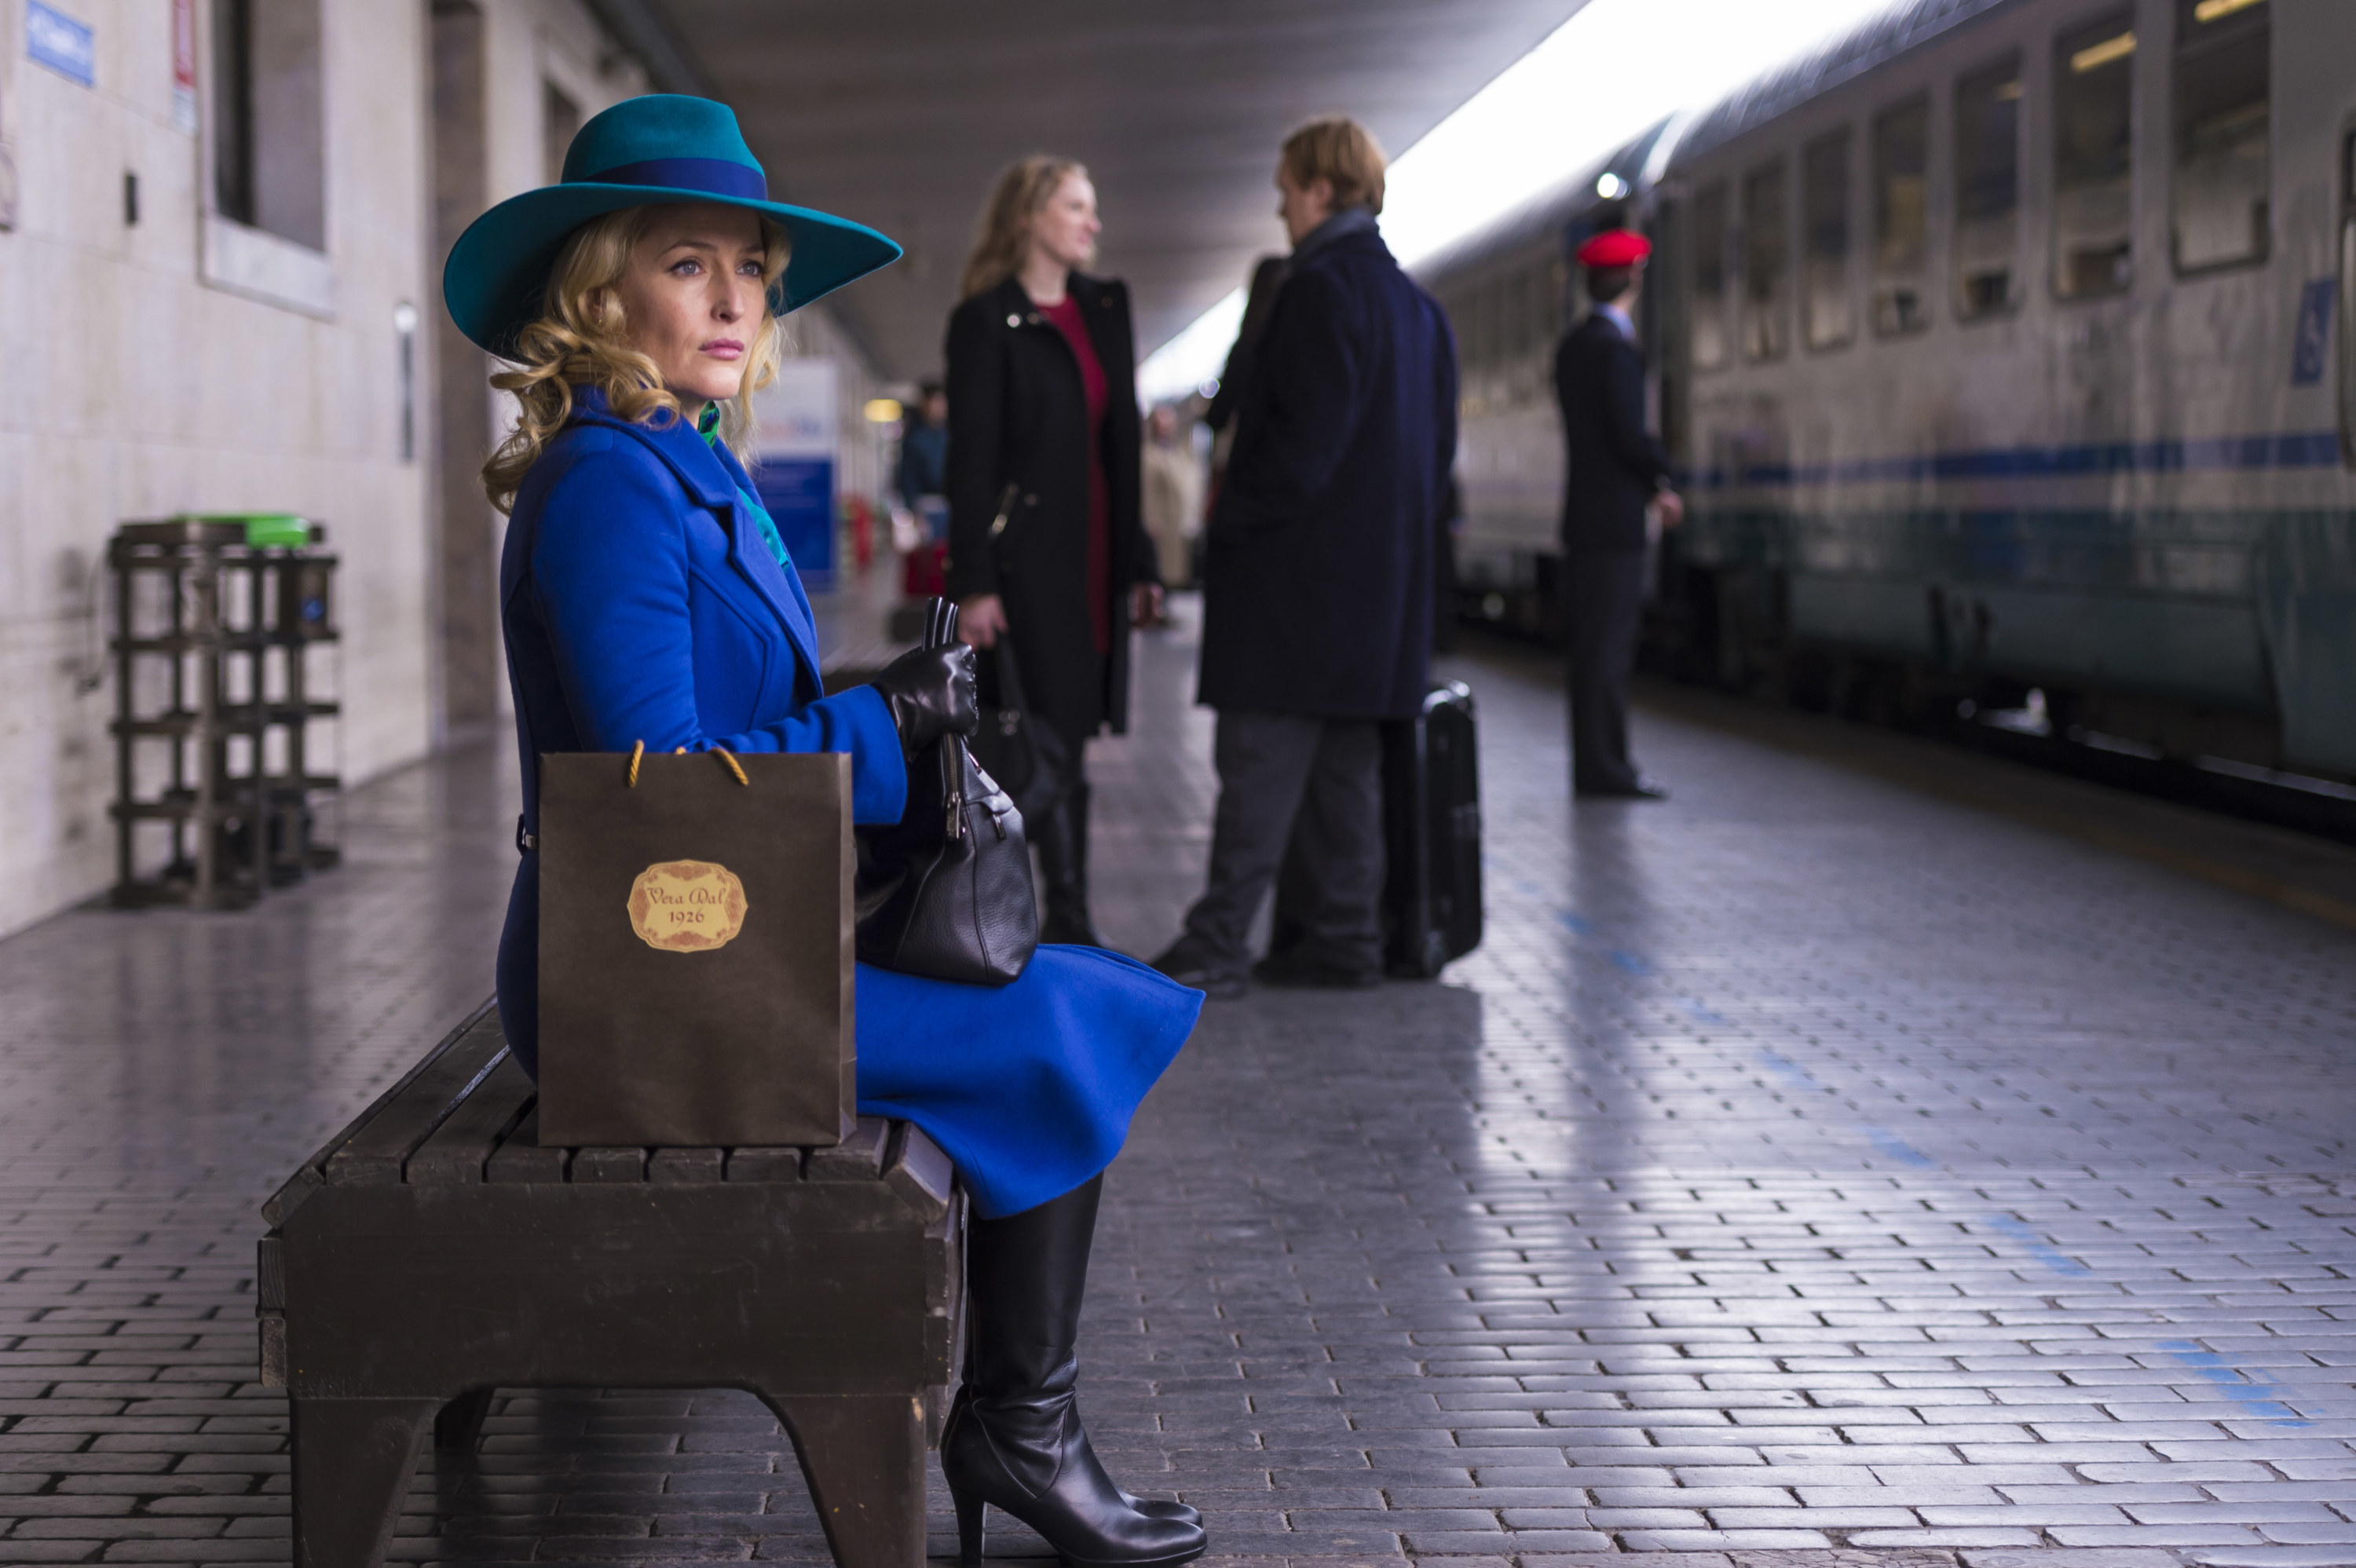 Gillian Anderson as Bedelia waiting for a train